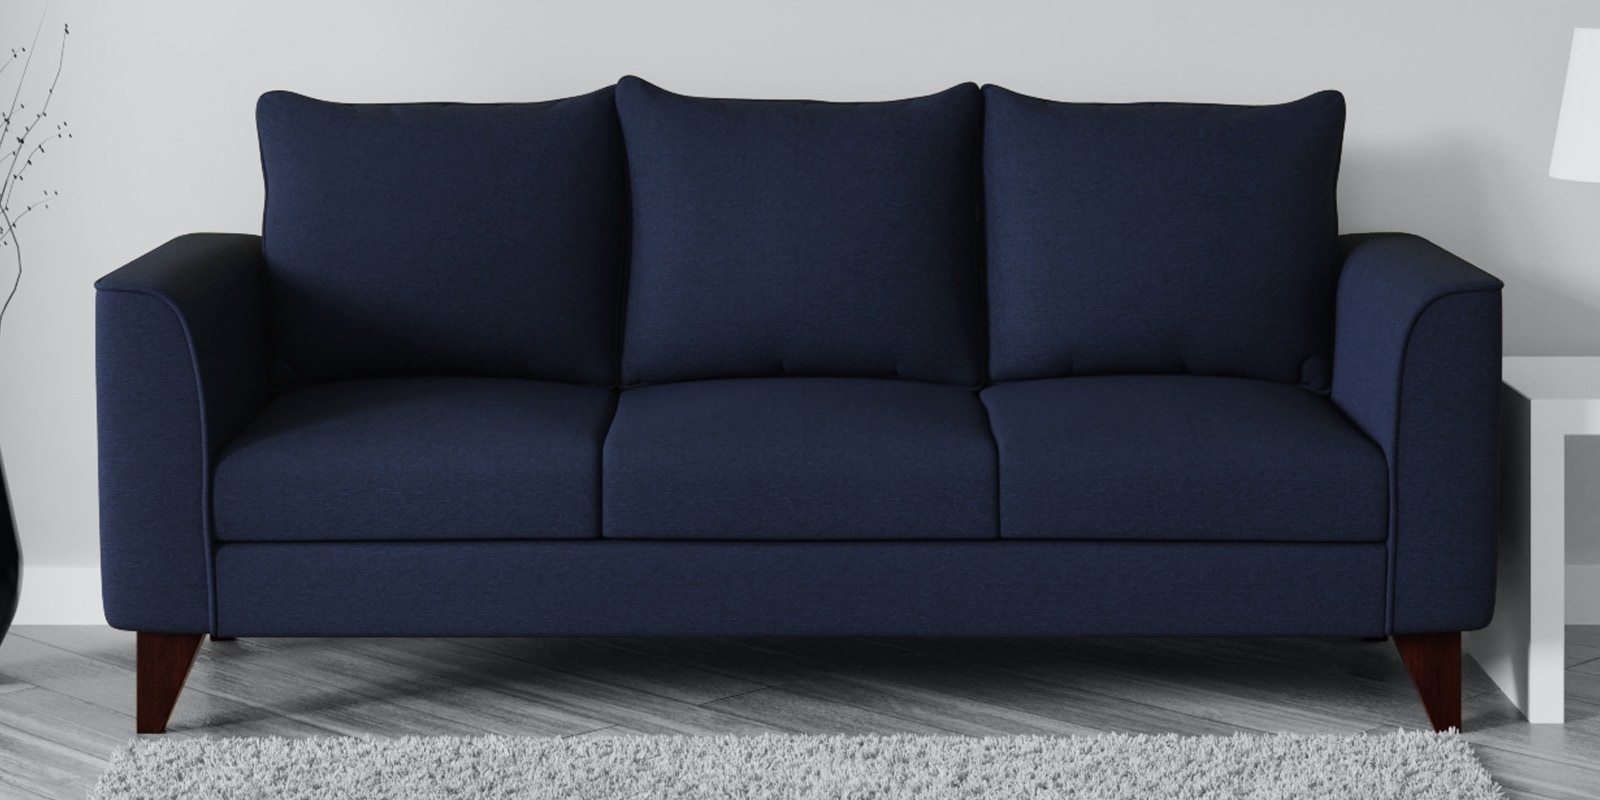 Picture of: Buy Lara 3 Seater Sofa In Navy Blue Colour By Casacraft Online Lawson Sofa Sets Sofa Sets Furniture Pepperfry Product